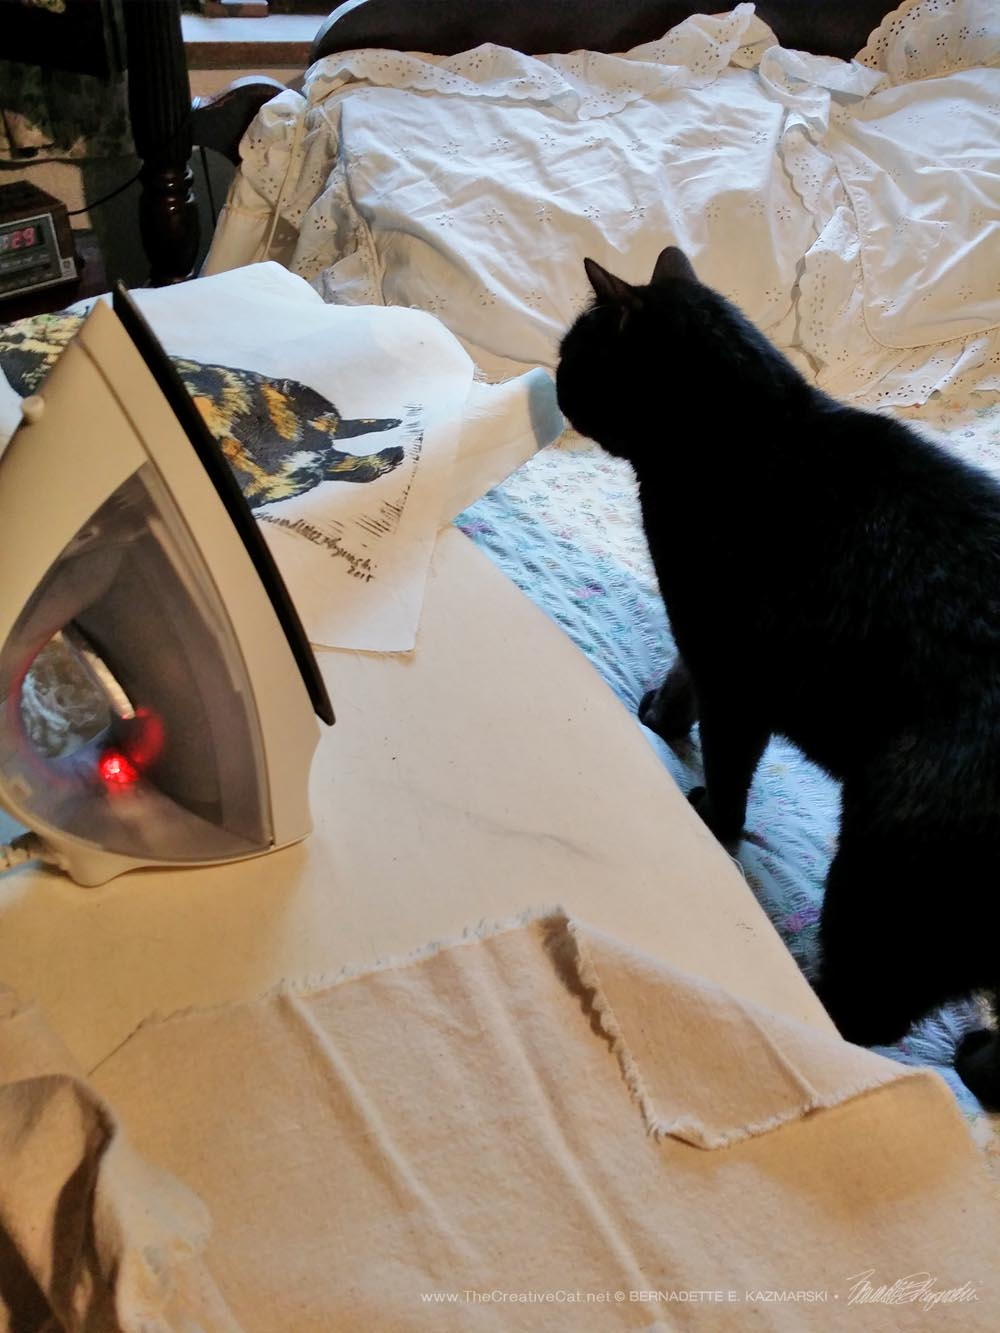 Mewsette inspects my materials as I iron the designs on the bags.